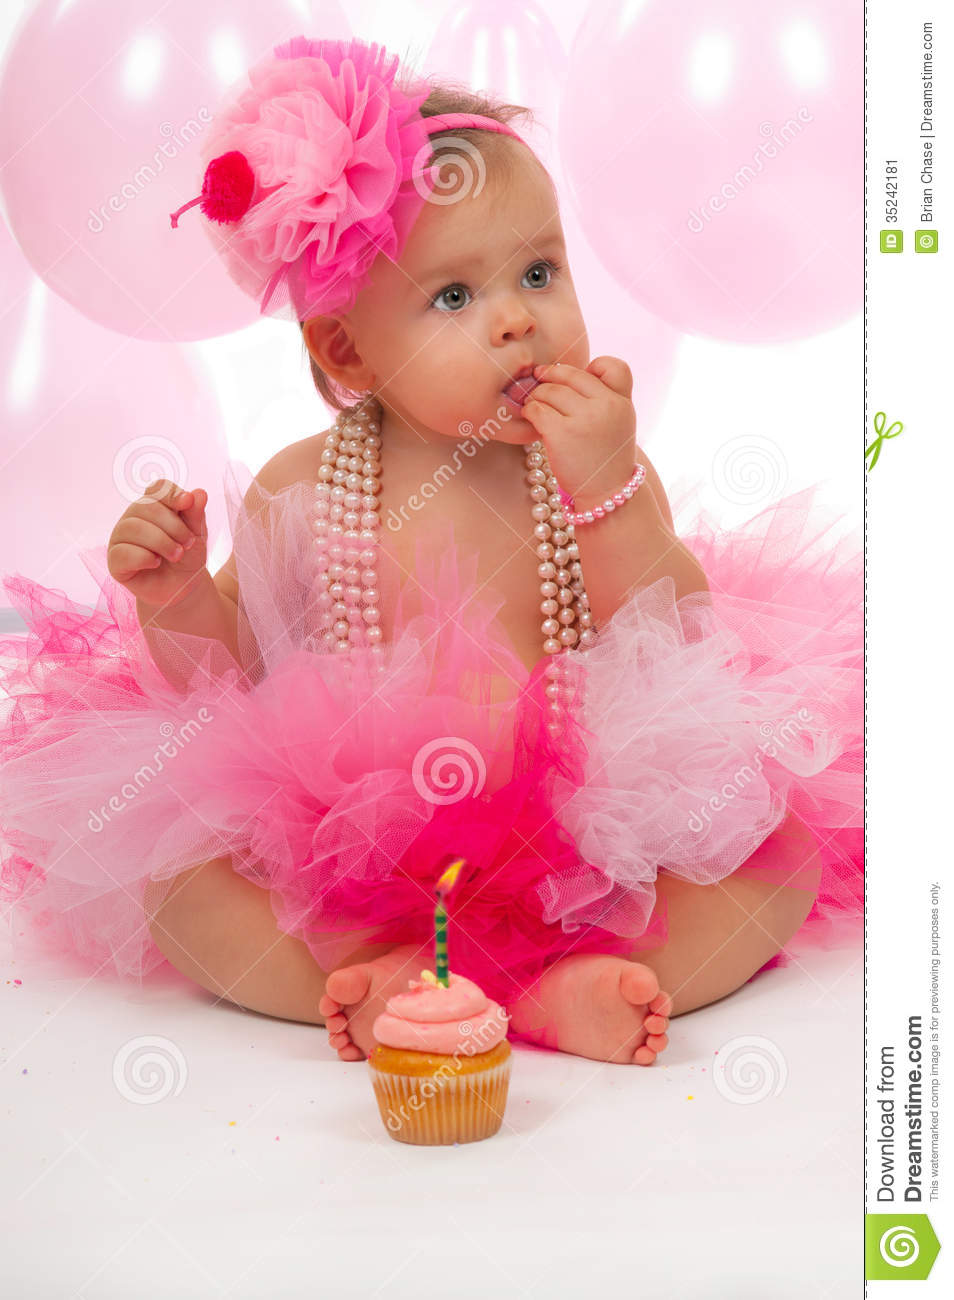 Baby Stock Image Image Of Childhood Jewelry Band Pink